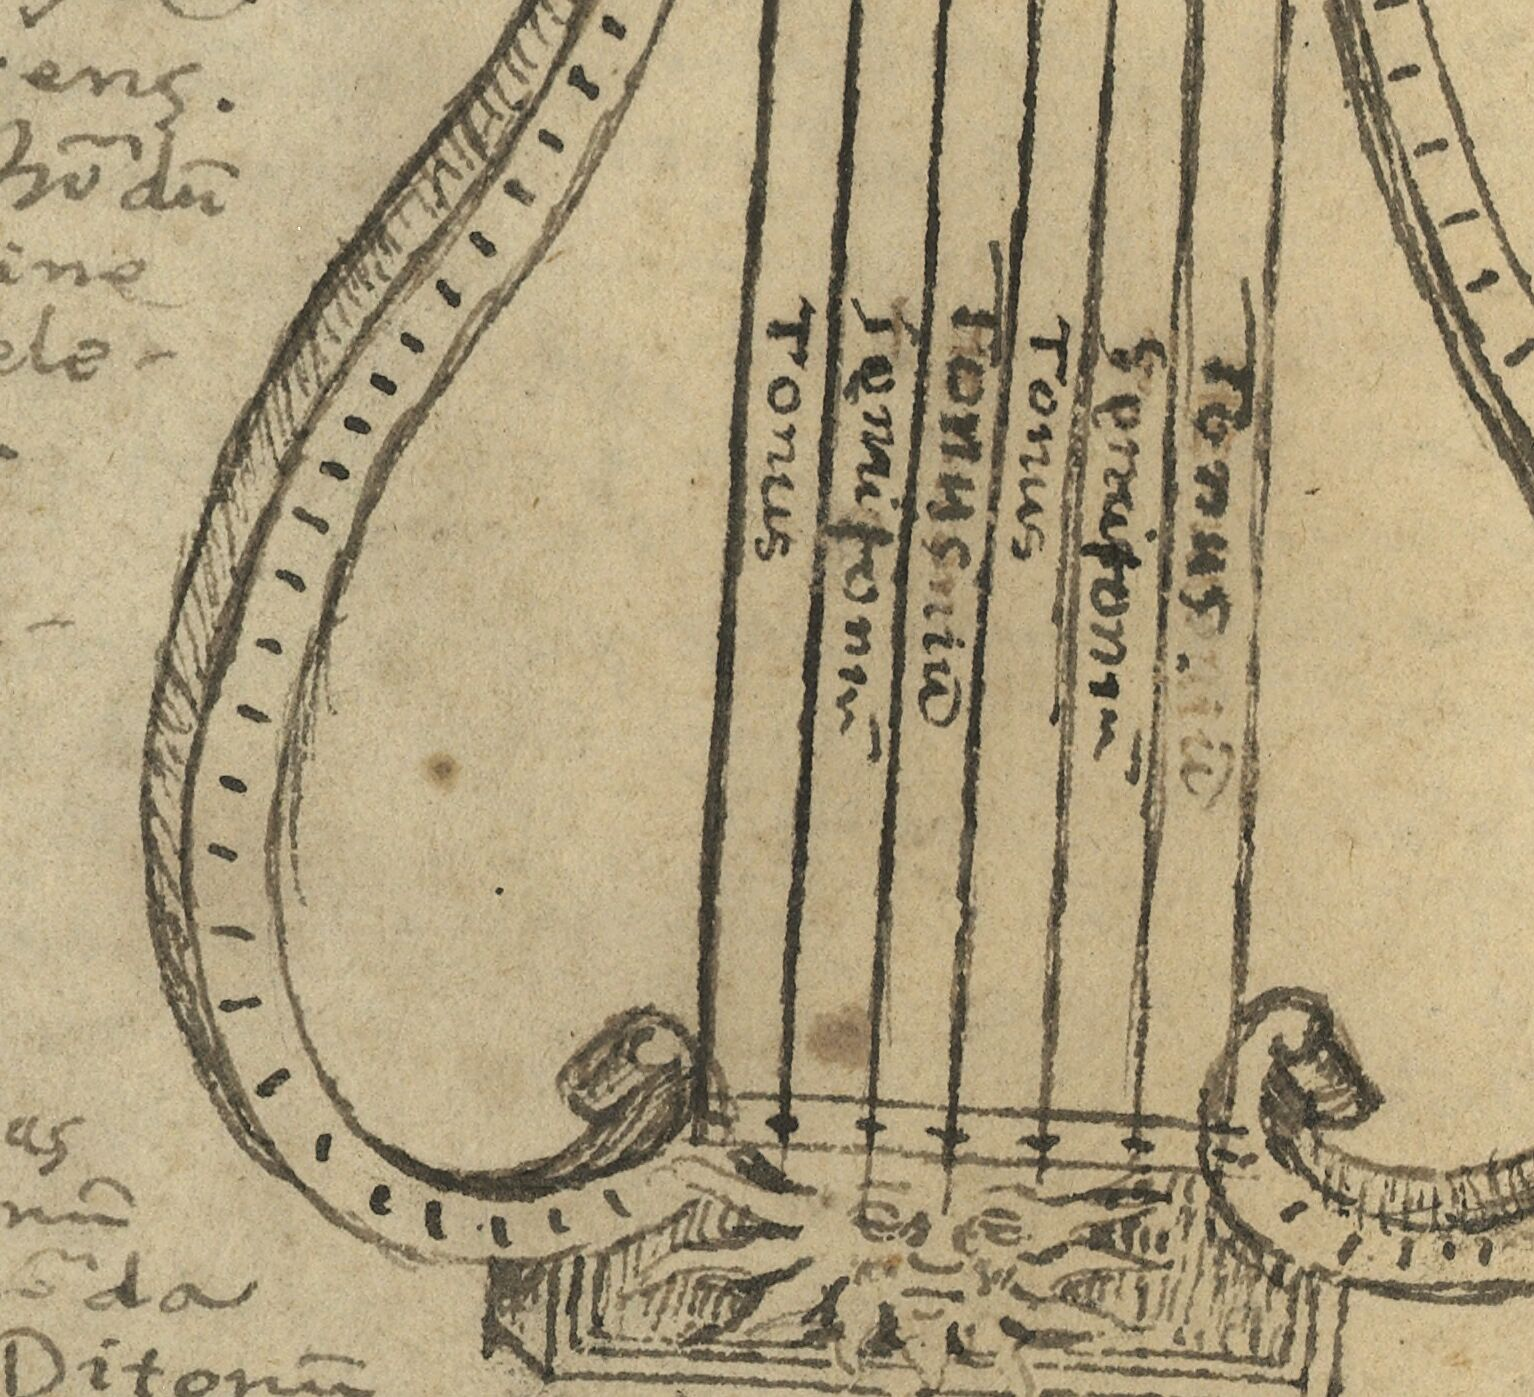 Lyre theory